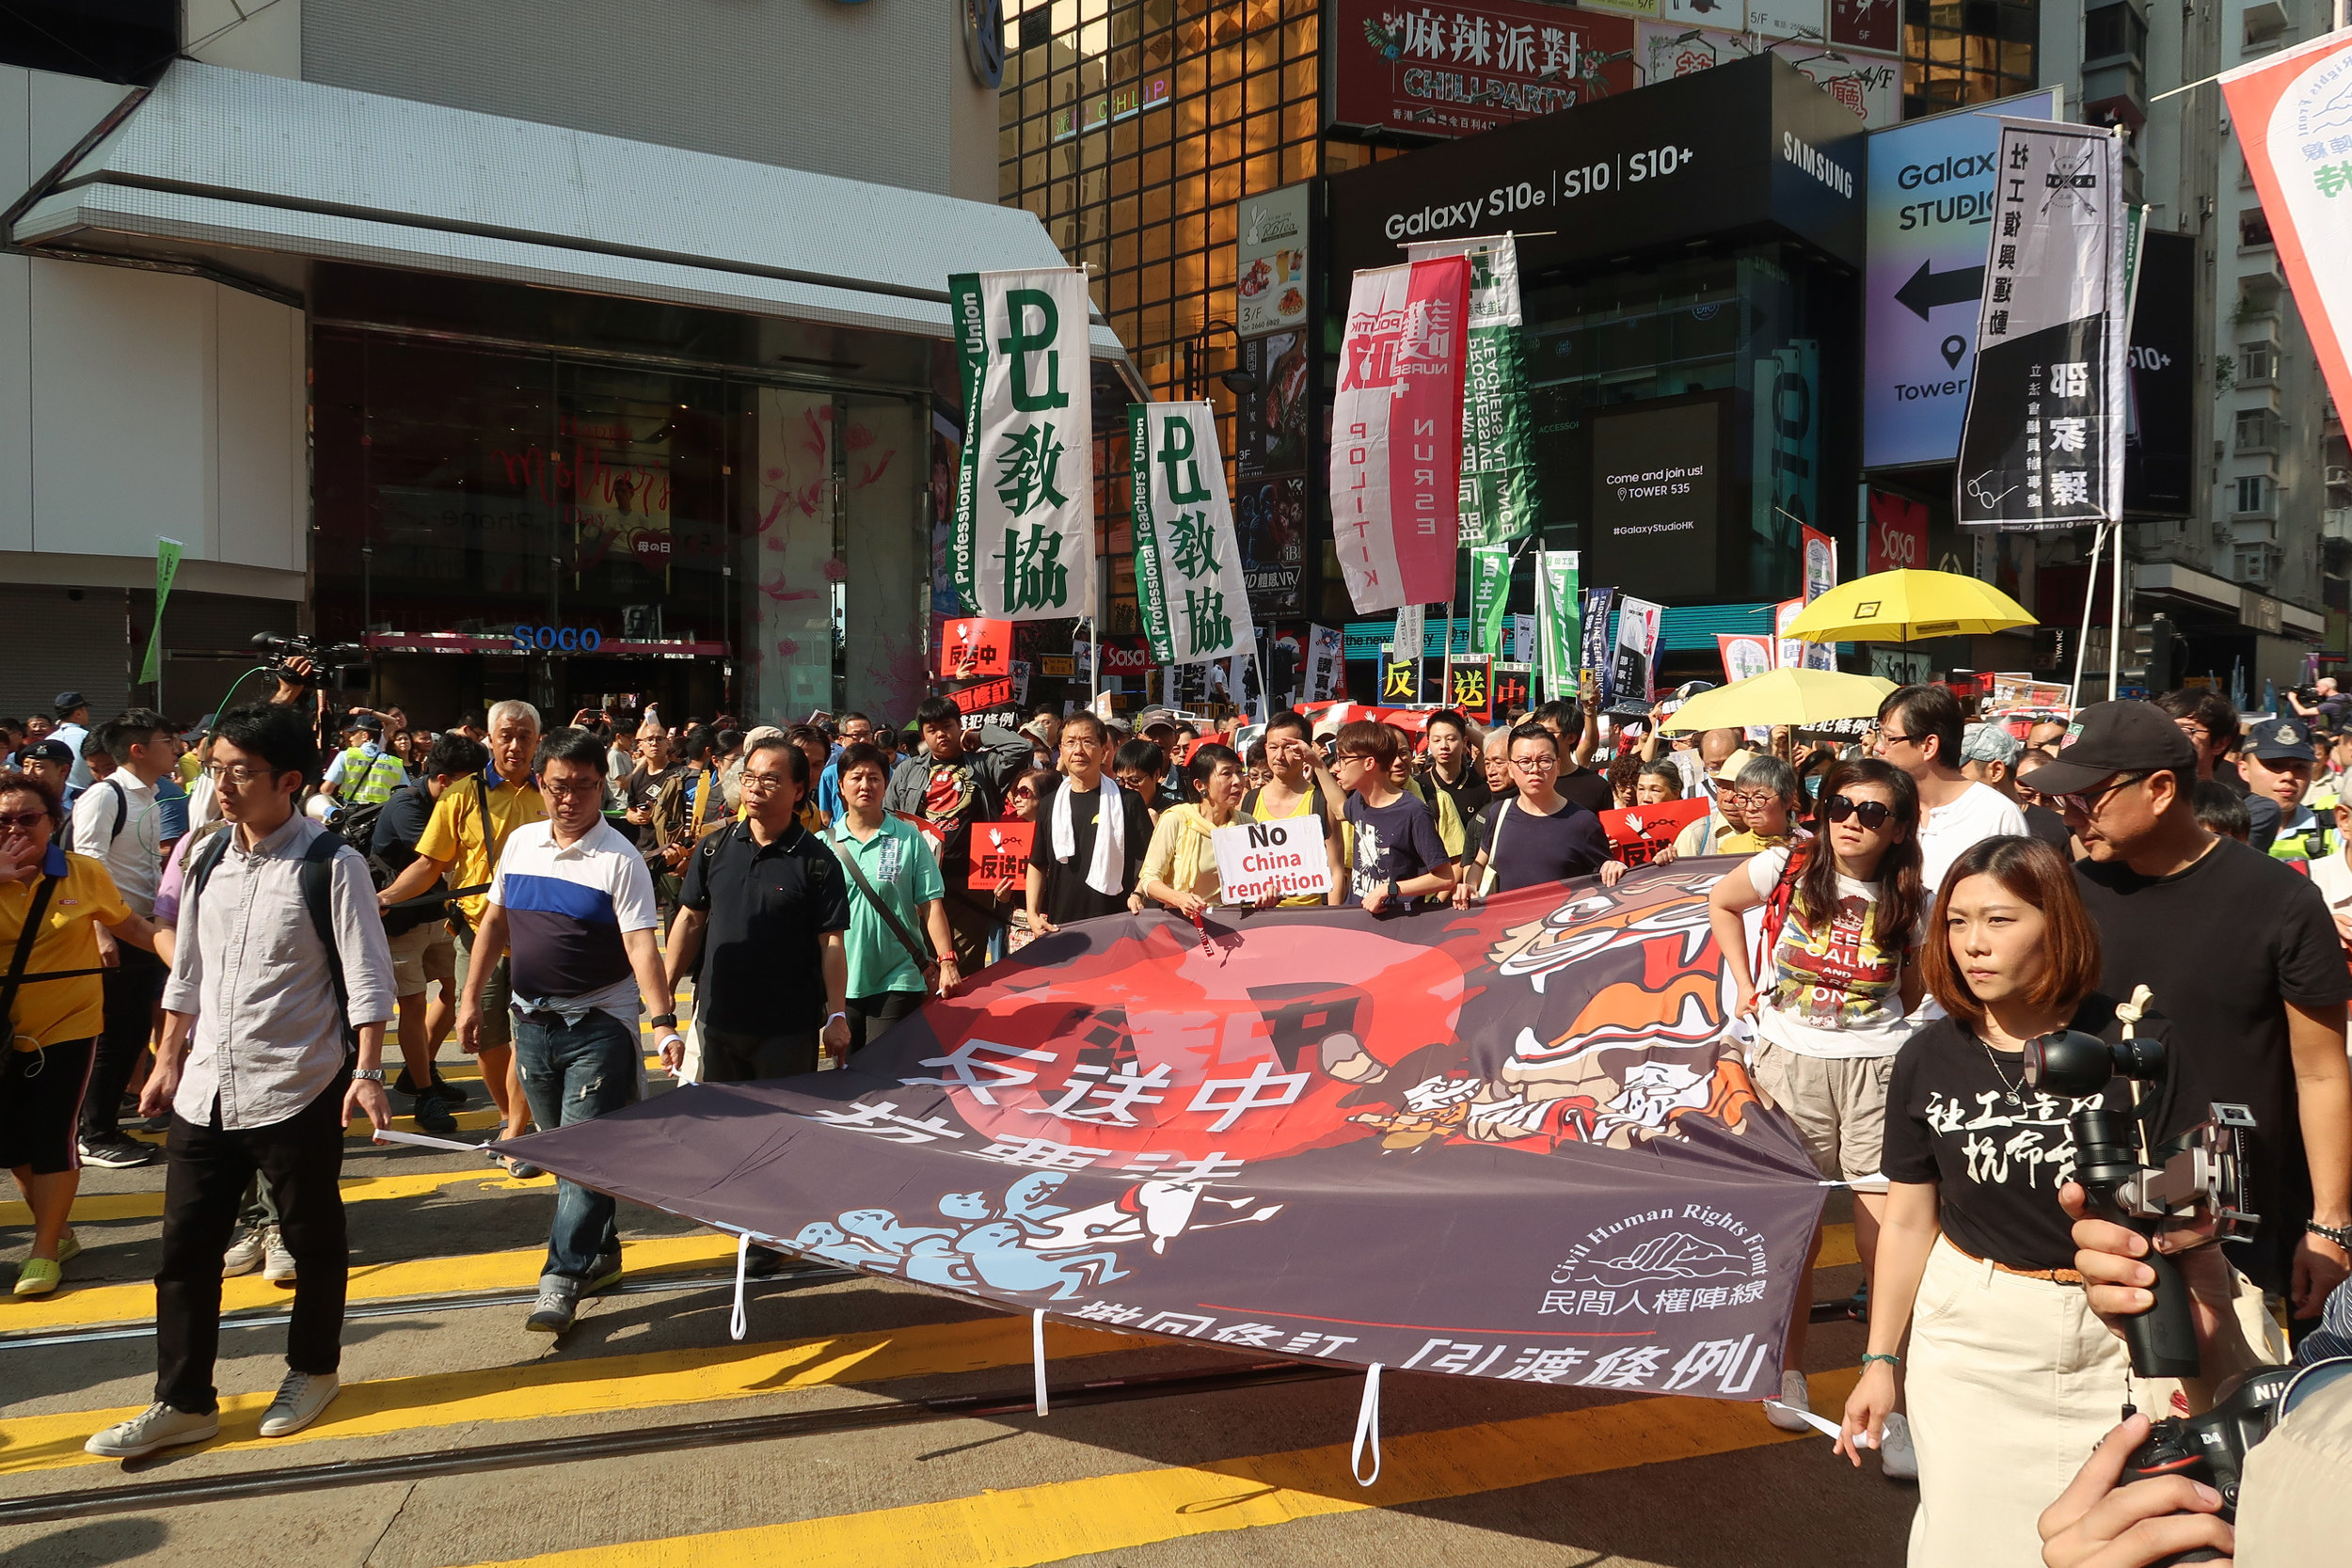 Hong Kong's streets were seething with protestors. | Credit:  Wpcpey